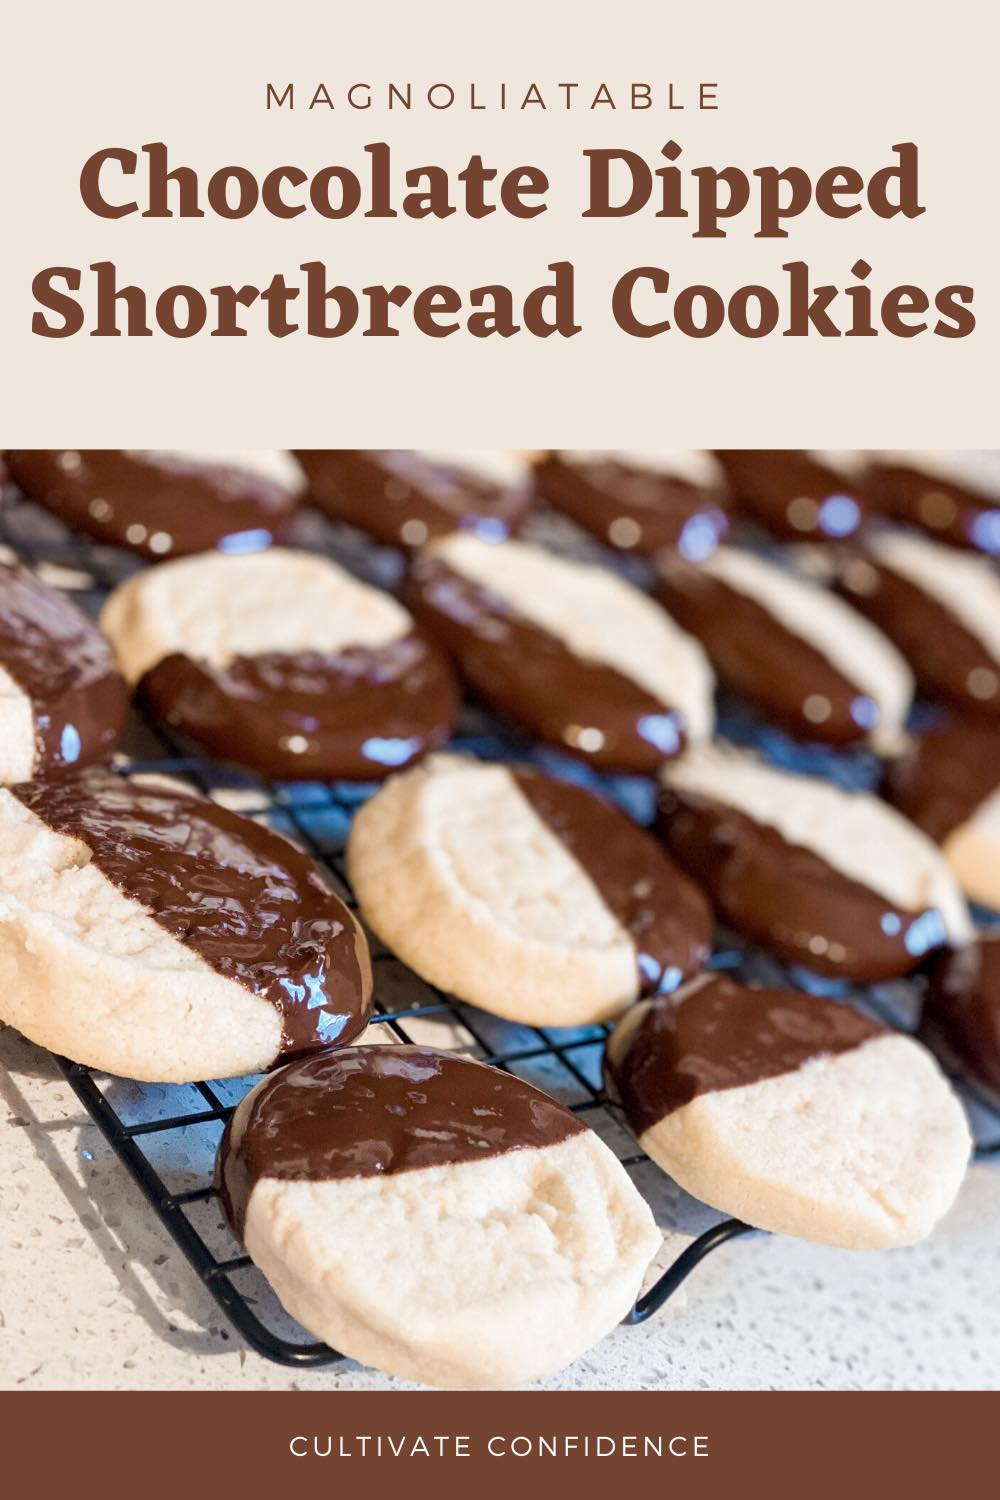 How to Make the Best Chocolate Dipped Shortbread Cookies